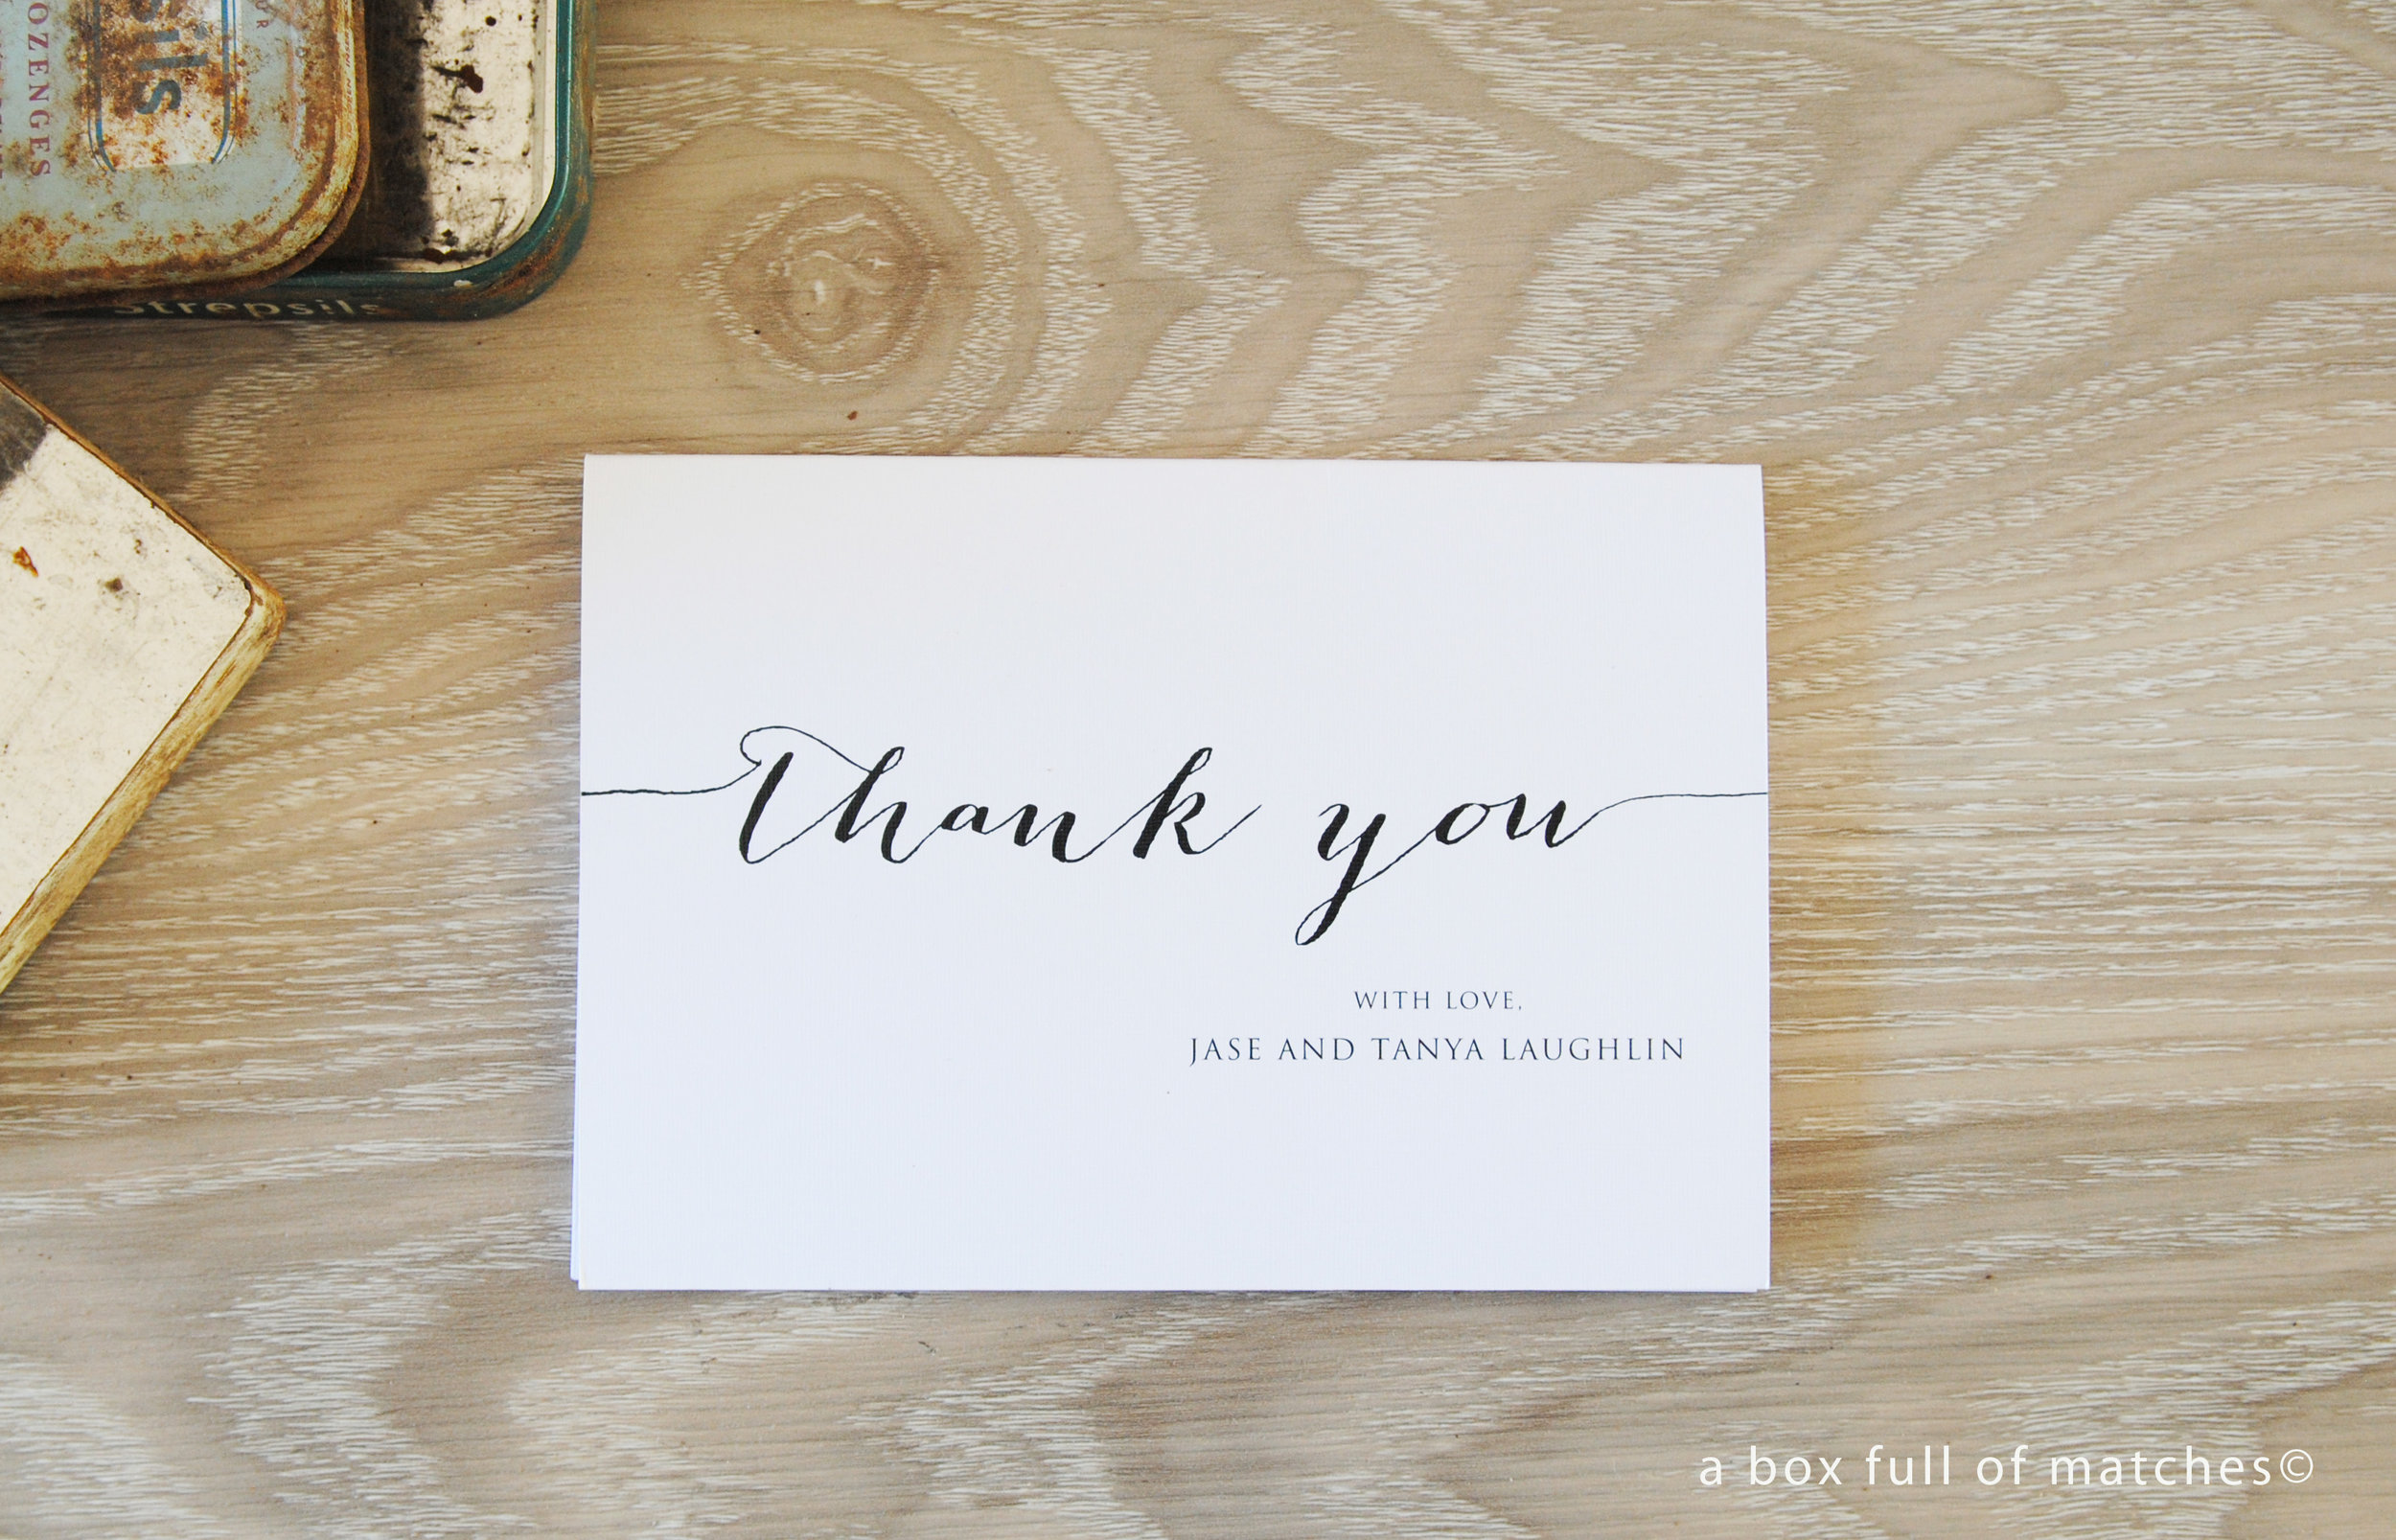 A6 Landscape Folded Thank You Cards - Created for you \u2014 A Box Full